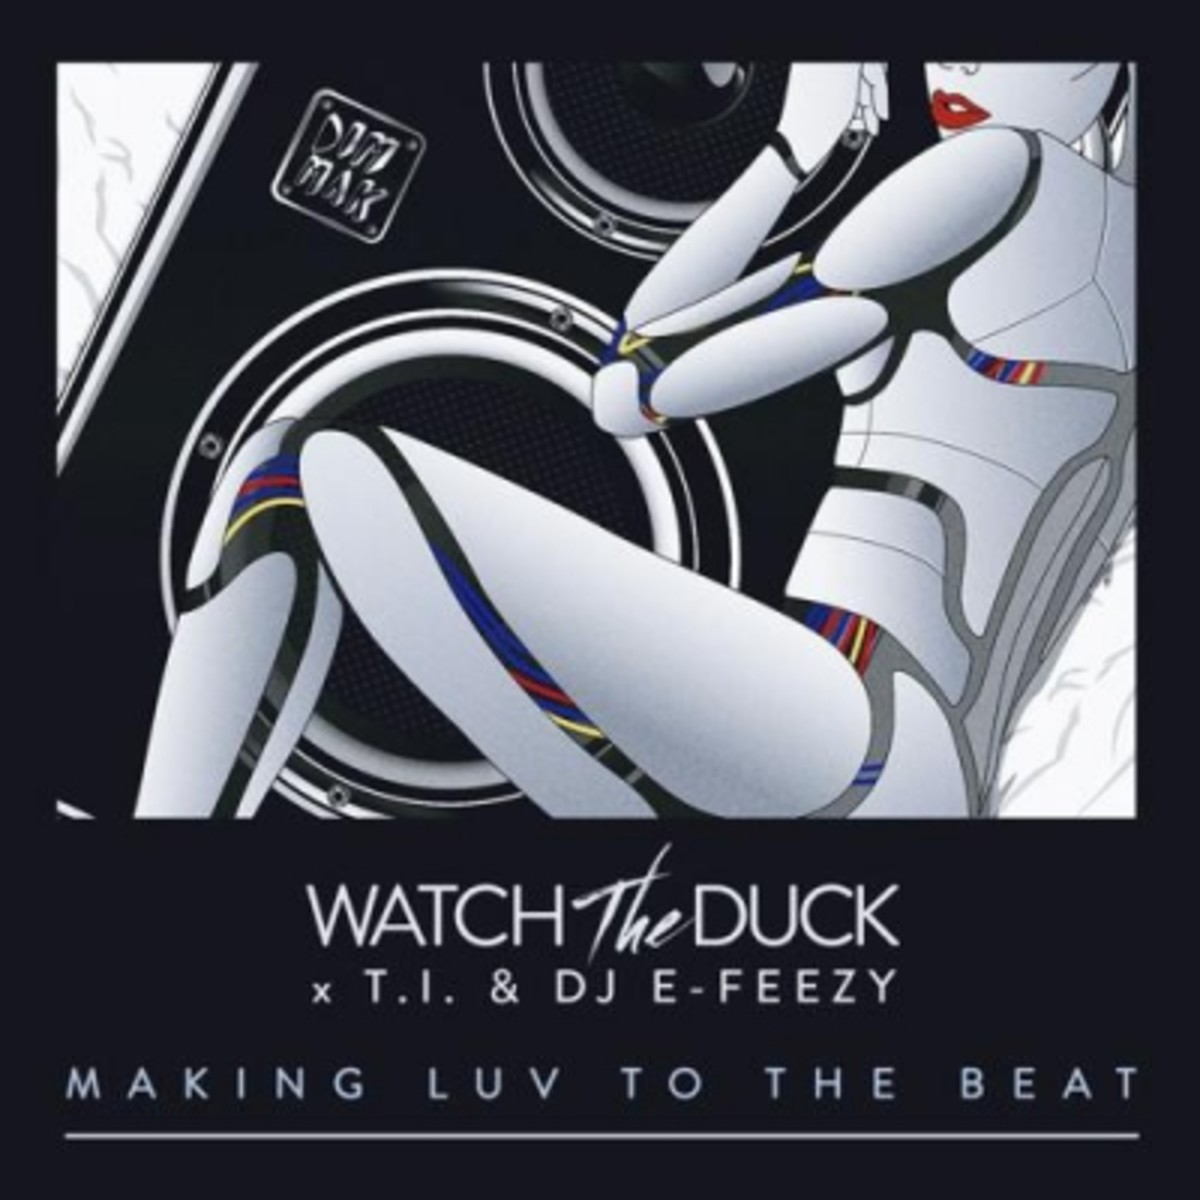 watch-the-duck-making-luv-to-the-beat.jpg